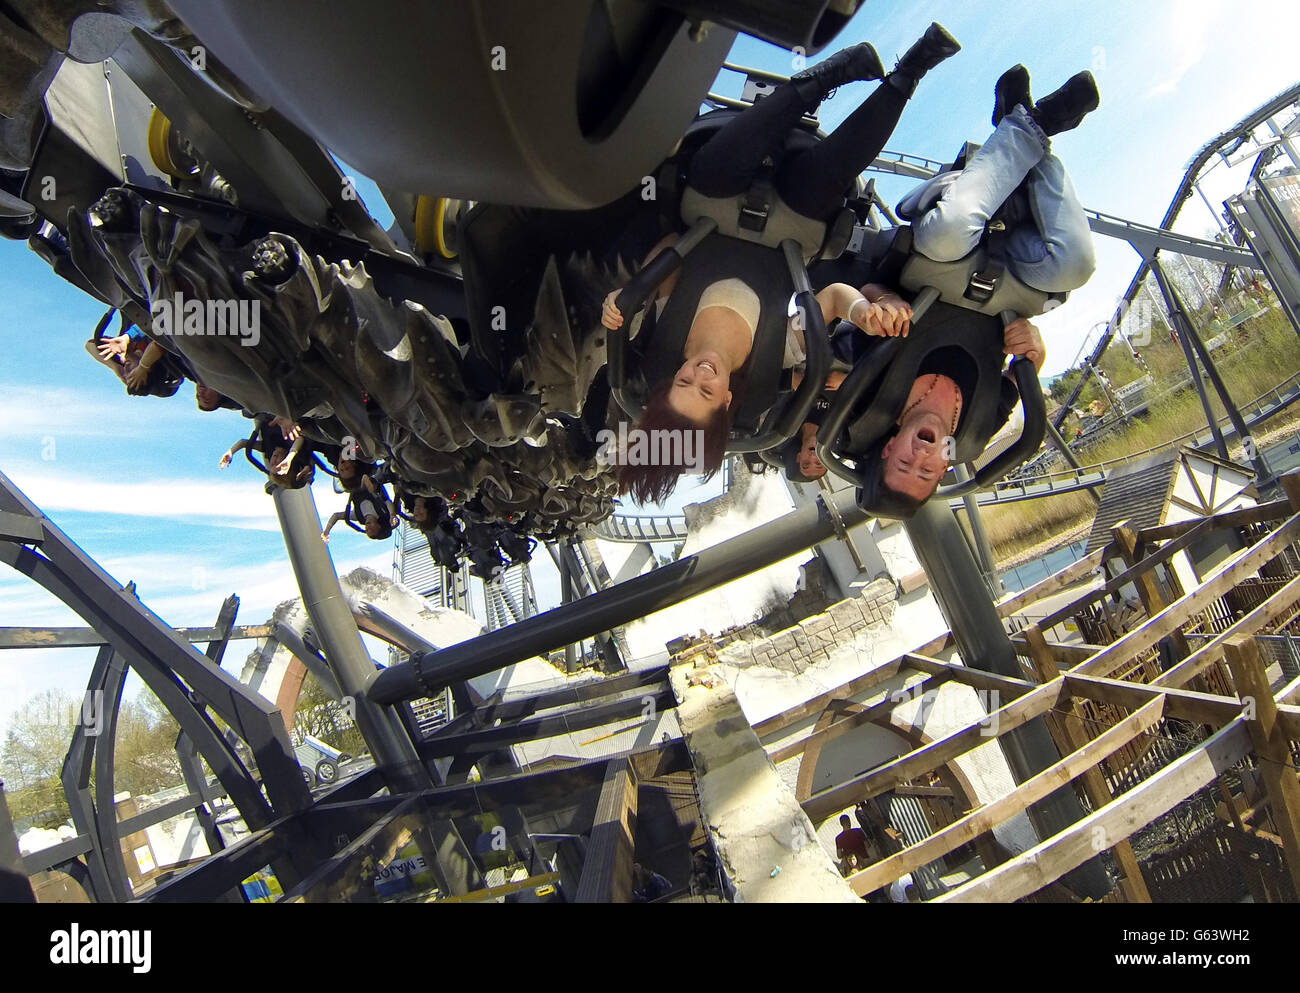 Rollercoasters - Thorpe Park - Stock Image